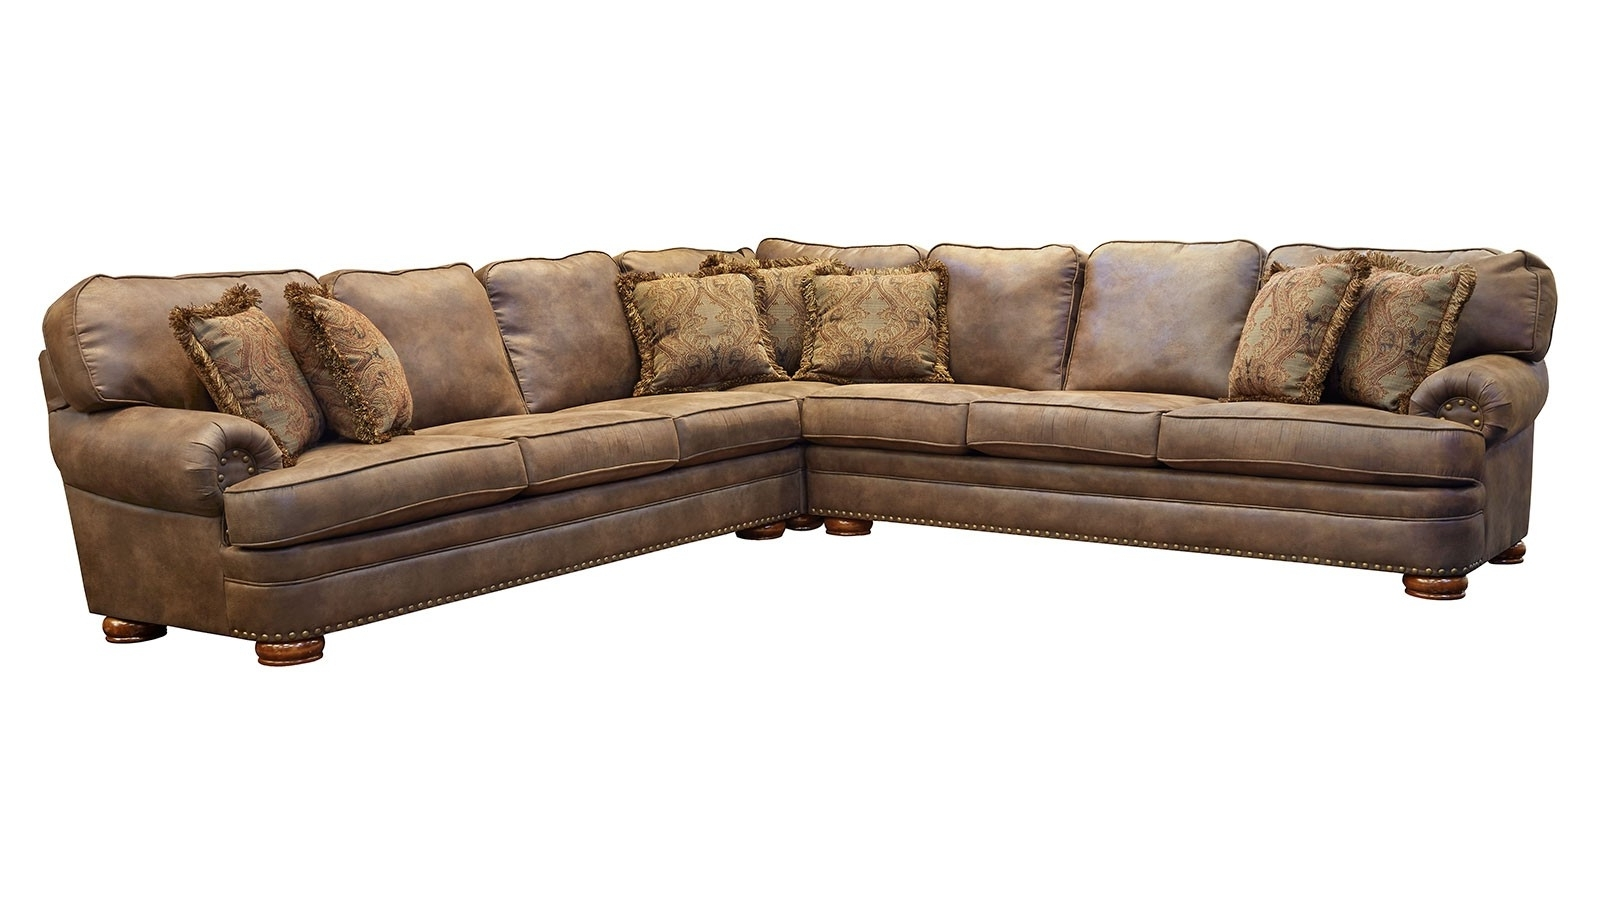 Gallery Furniture With El Paso Sectional Sofas (Gallery 1 of 15)